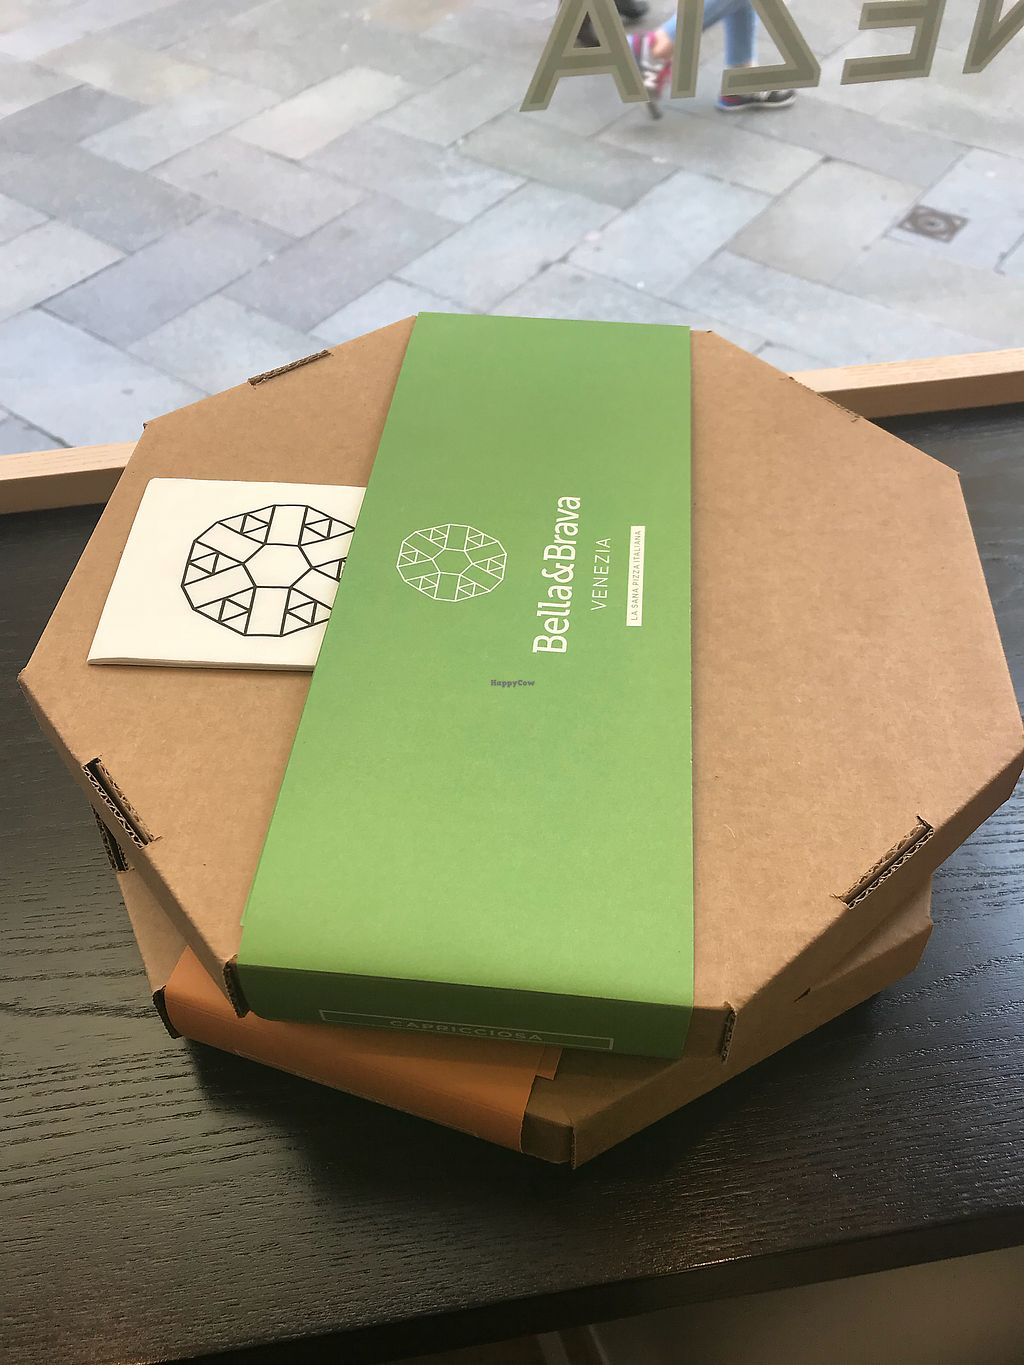 """Photo of Bella&Brava  by <a href=""""/members/profile/AbbiCastle"""">AbbiCastle</a> <br/>the shop, the branding and even the pizza boxes are very modern! it feels almost spacey! <br/> April 16, 2018  - <a href='/contact/abuse/image/78749/386764'>Report</a>"""